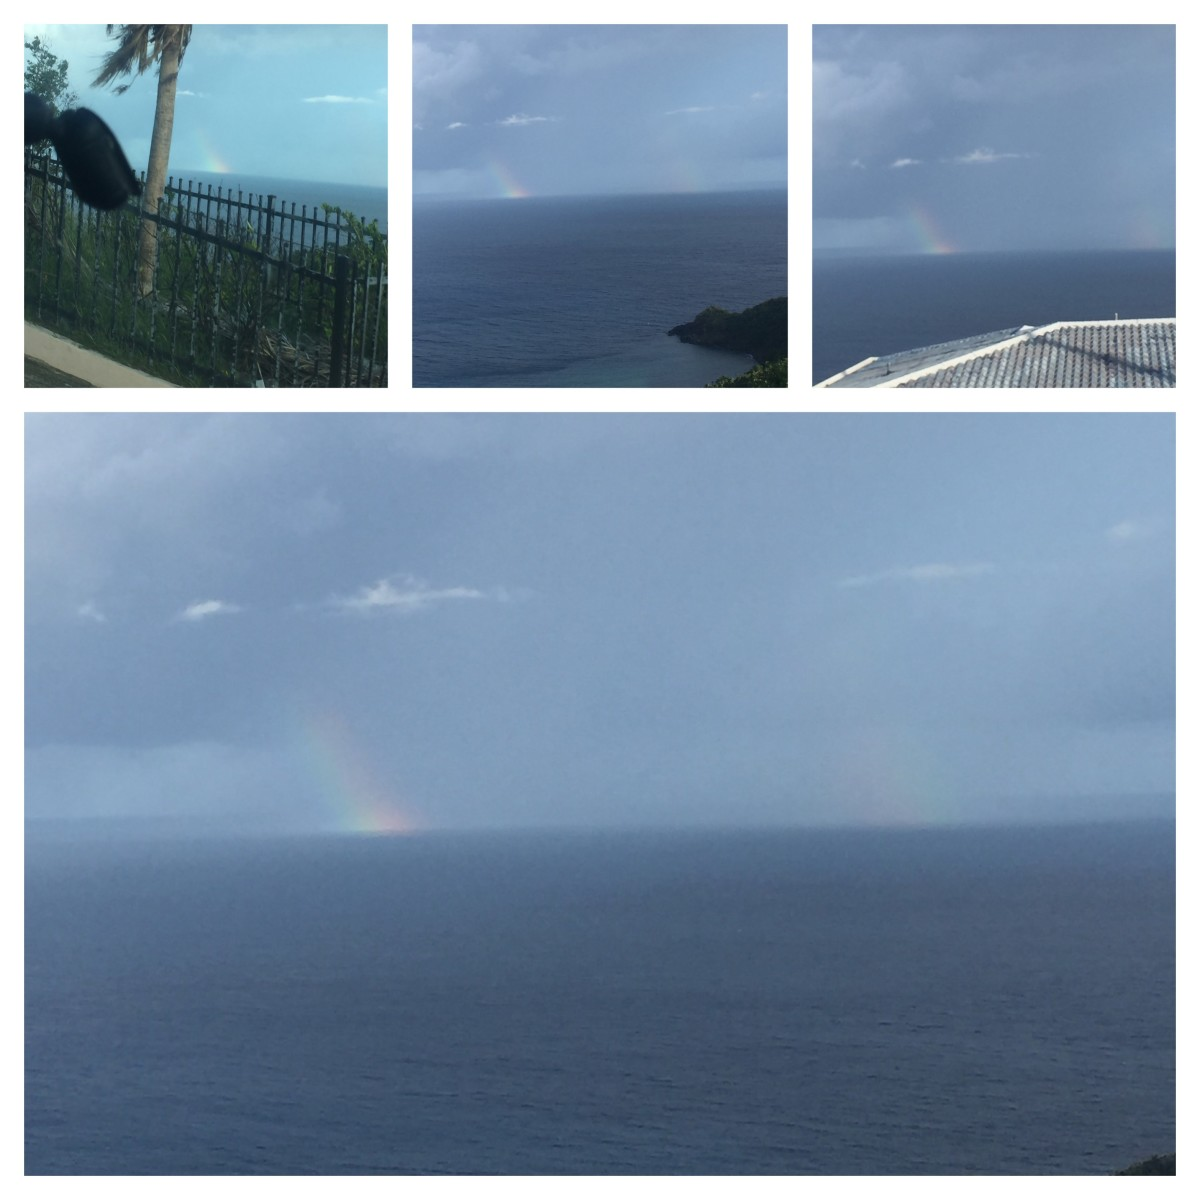 November 5, 2017 @ 8:30am viewing westward of St. Thomas. In the distance is Puerto Rico. A splash of rainbows in the ocean. Great!